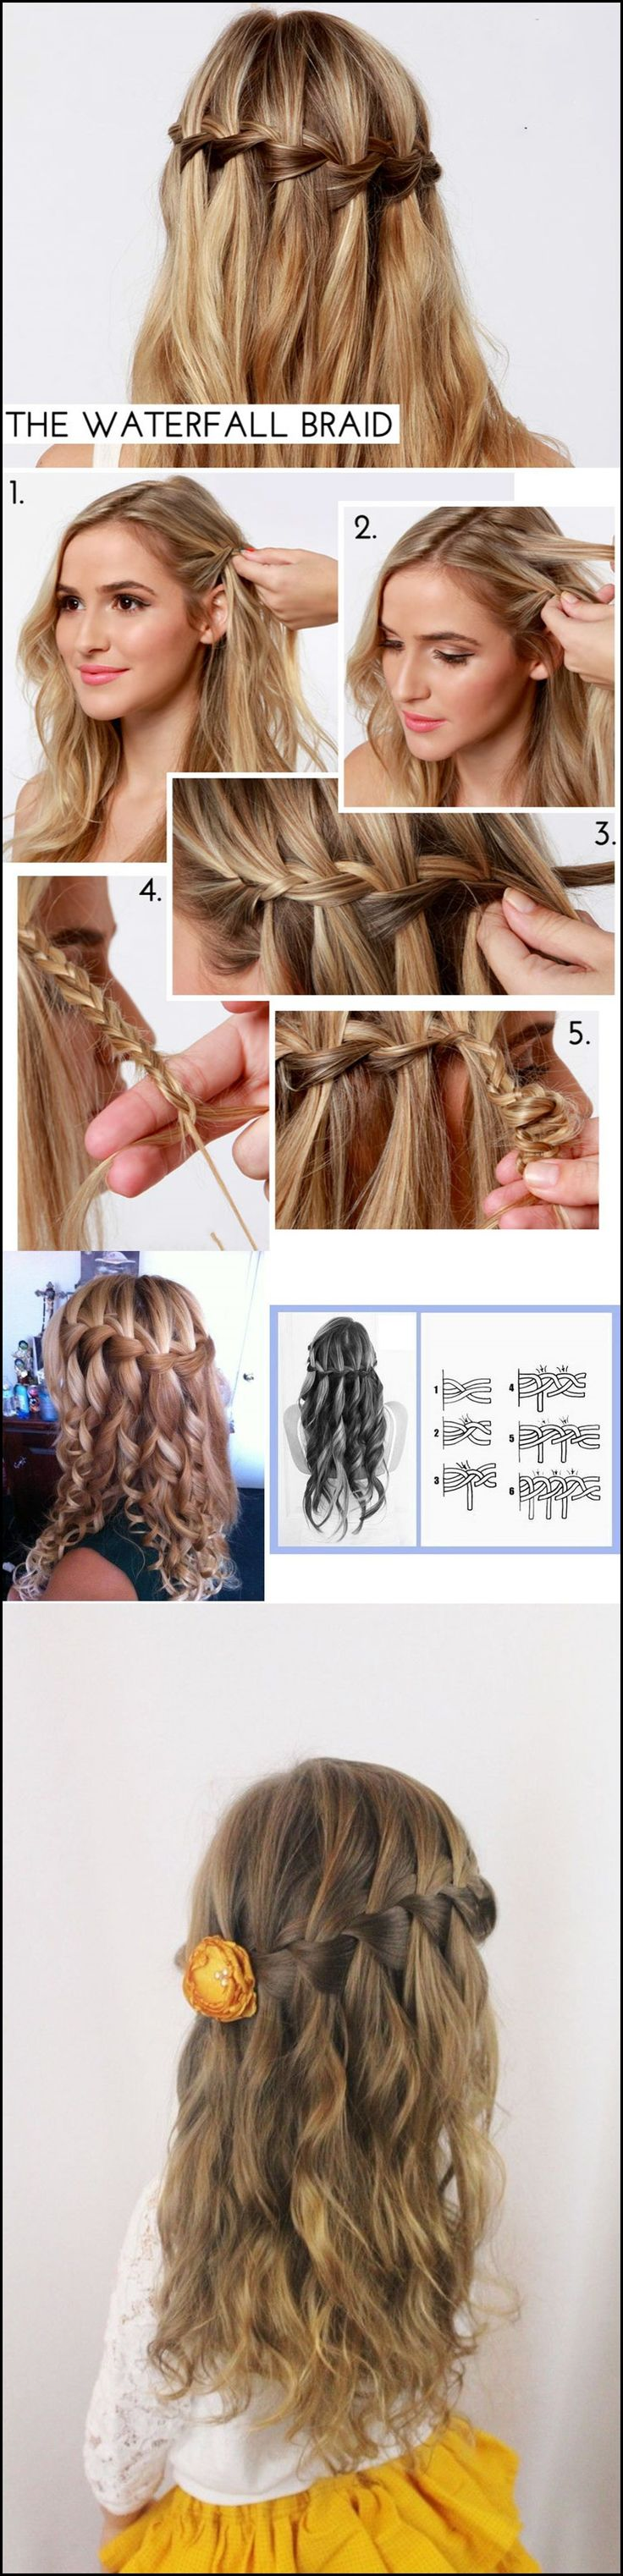 Waterfall braid hairstyle (Video) #diy #hairstyle